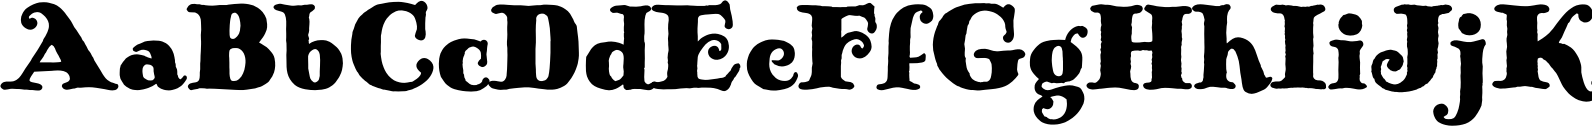 Pickworth Old Style Pro Font